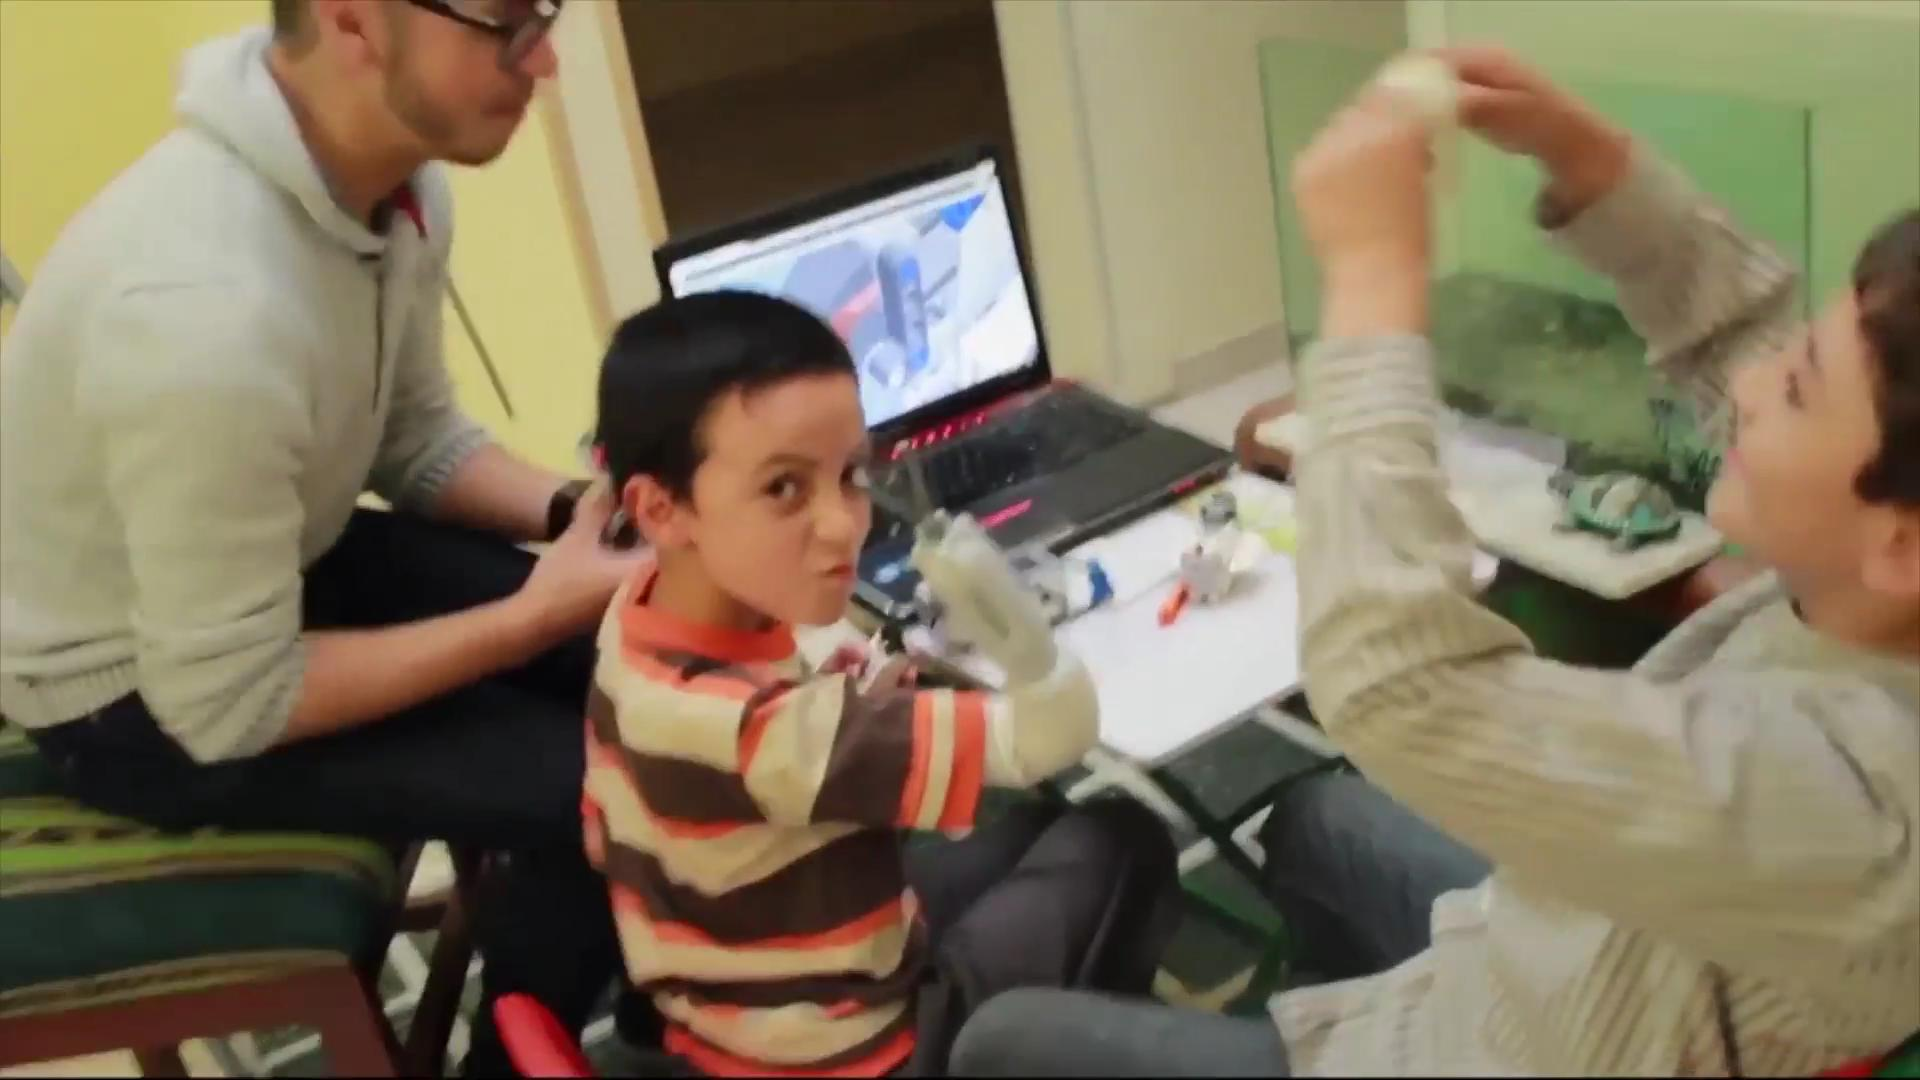 New LEGO Prosthetic Lets Kids Build Their Own Arm